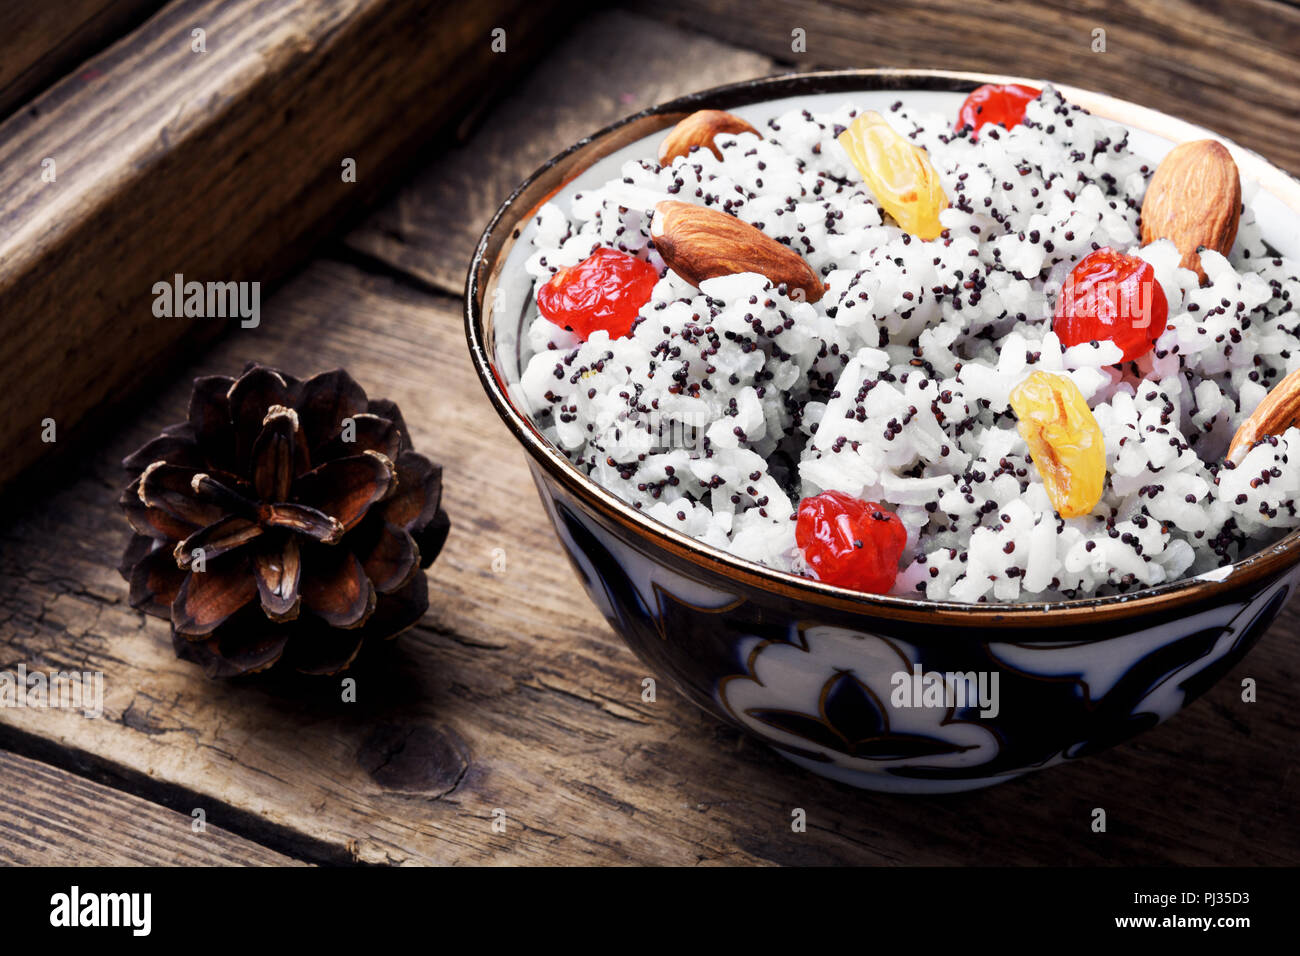 Kutia - traditional Christmas sweet meal.Kutya.Traditional Christmas table.Ukrainian Christmas kutya - Stock Image